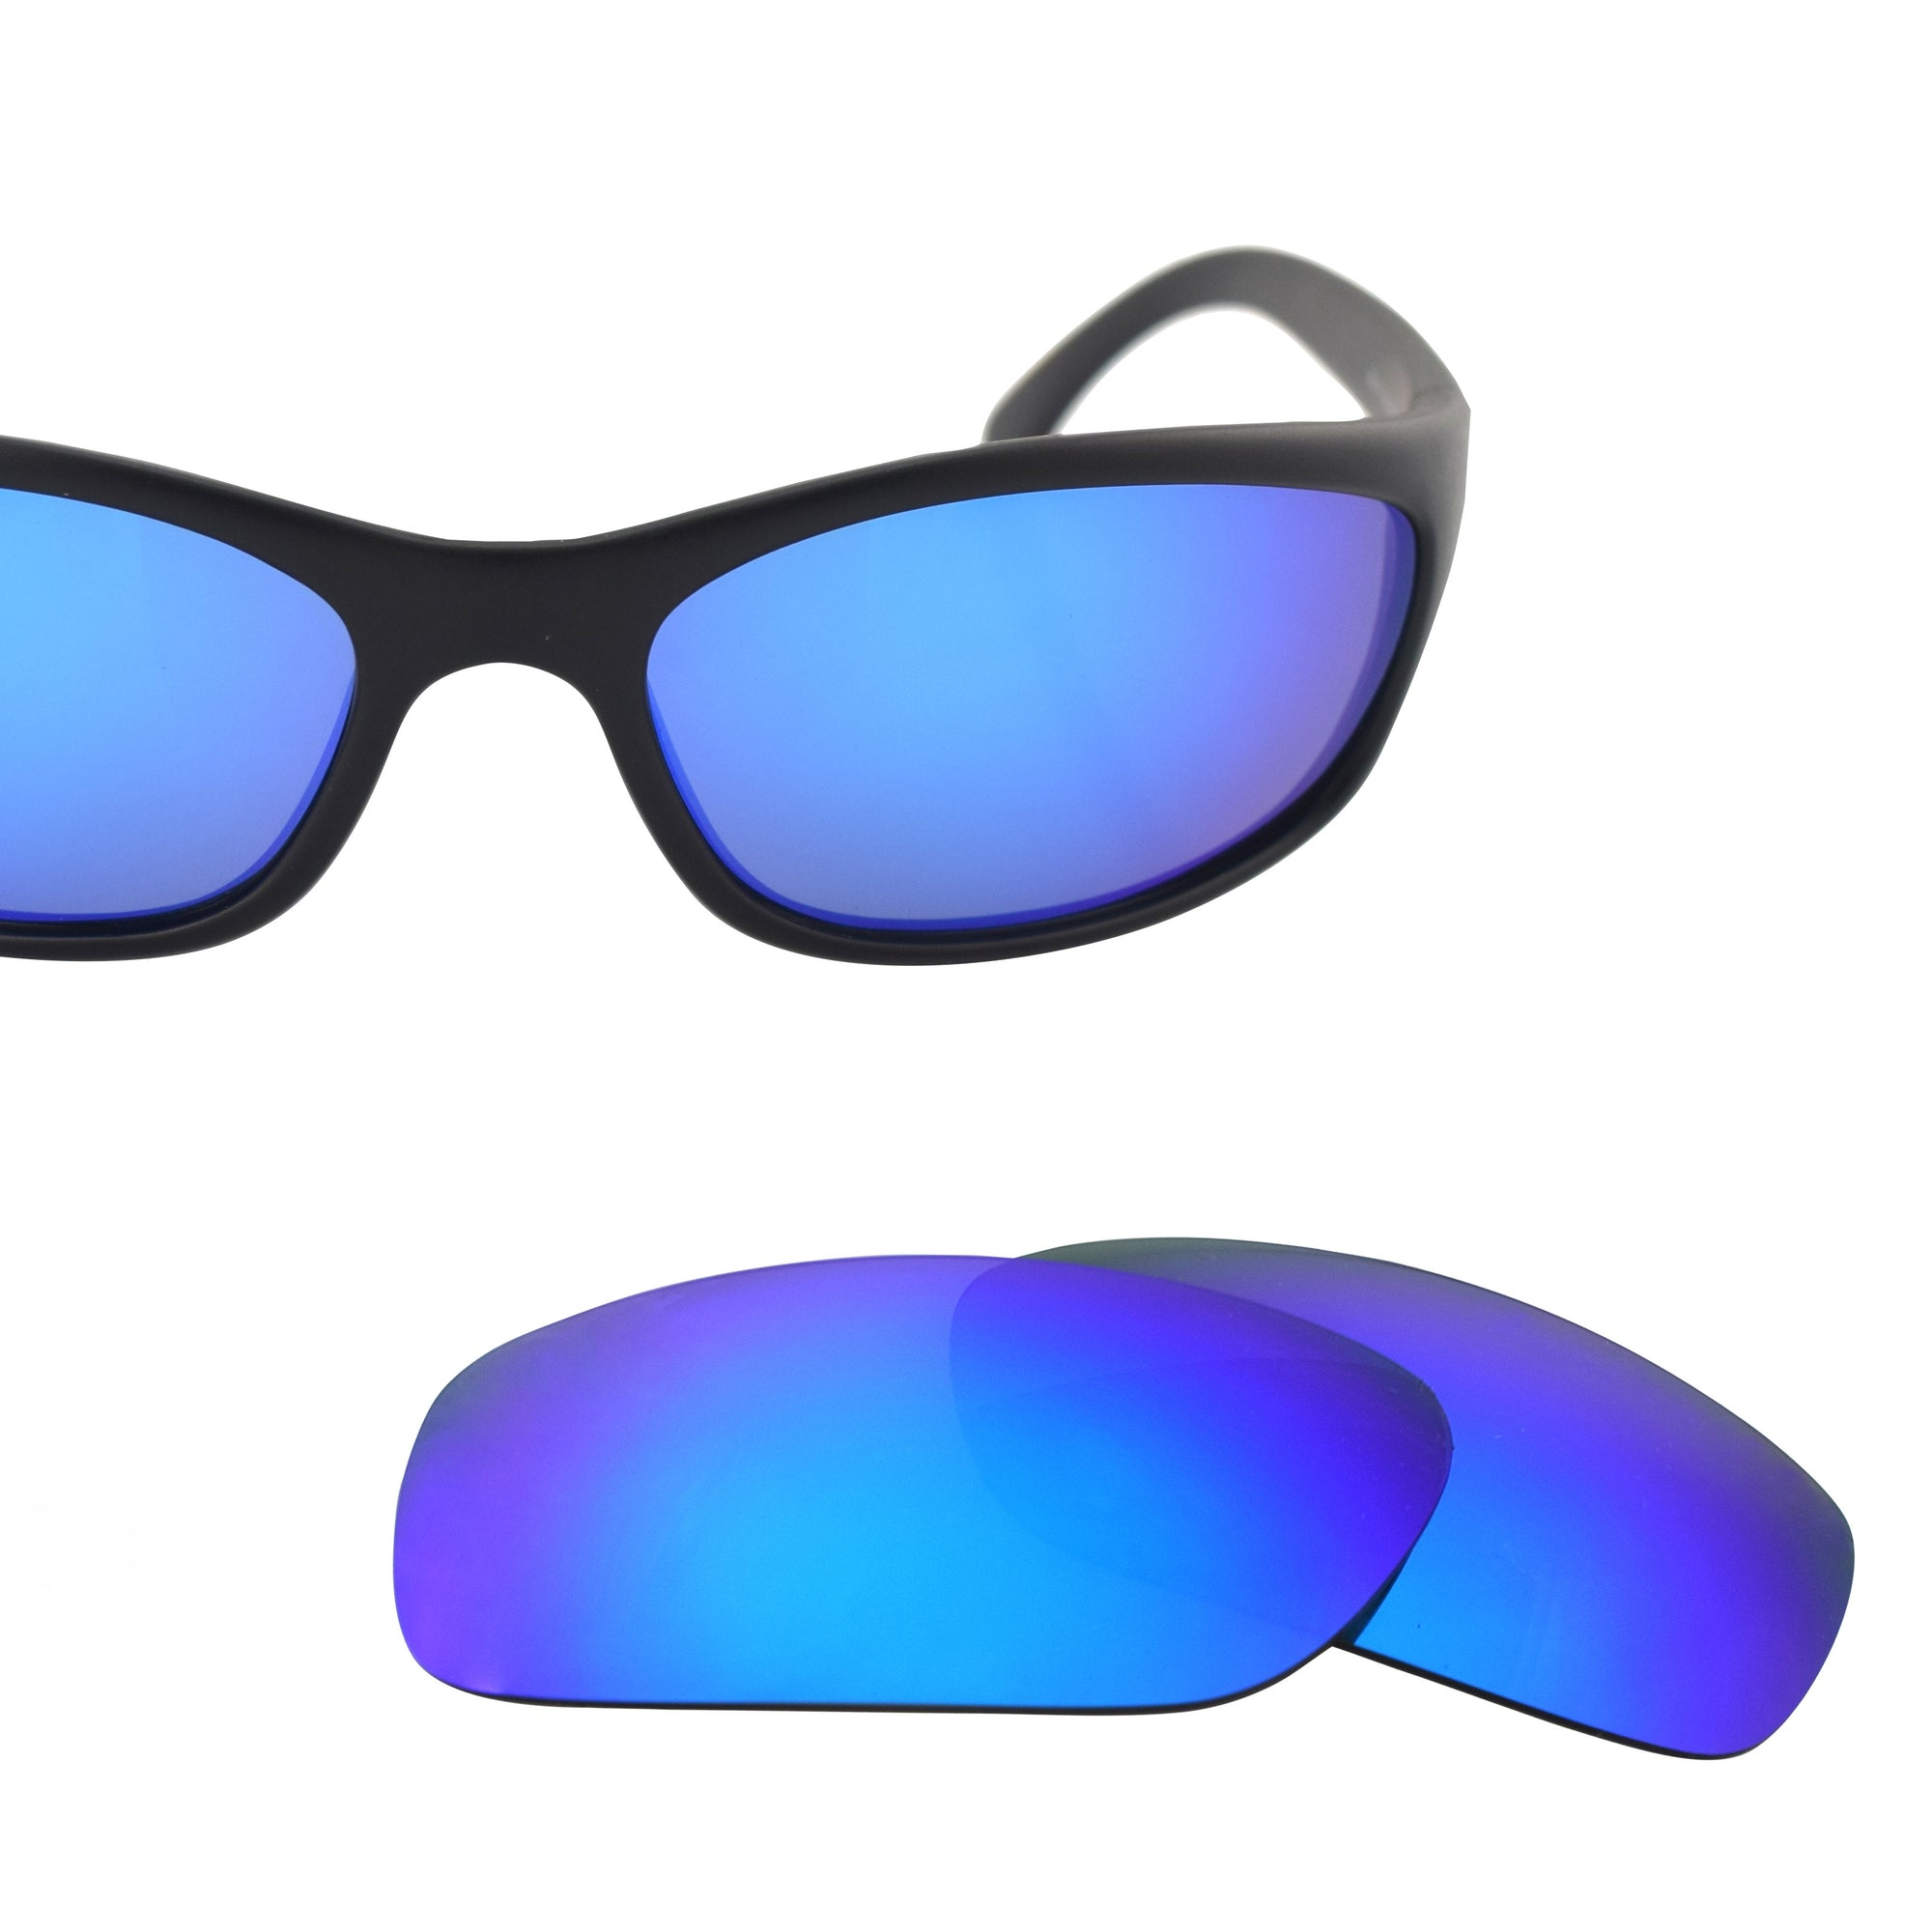 9b7a3c7cee8b3 Ray Ban Fast and Furious RB4115 Lens Replacement - LenzFlip